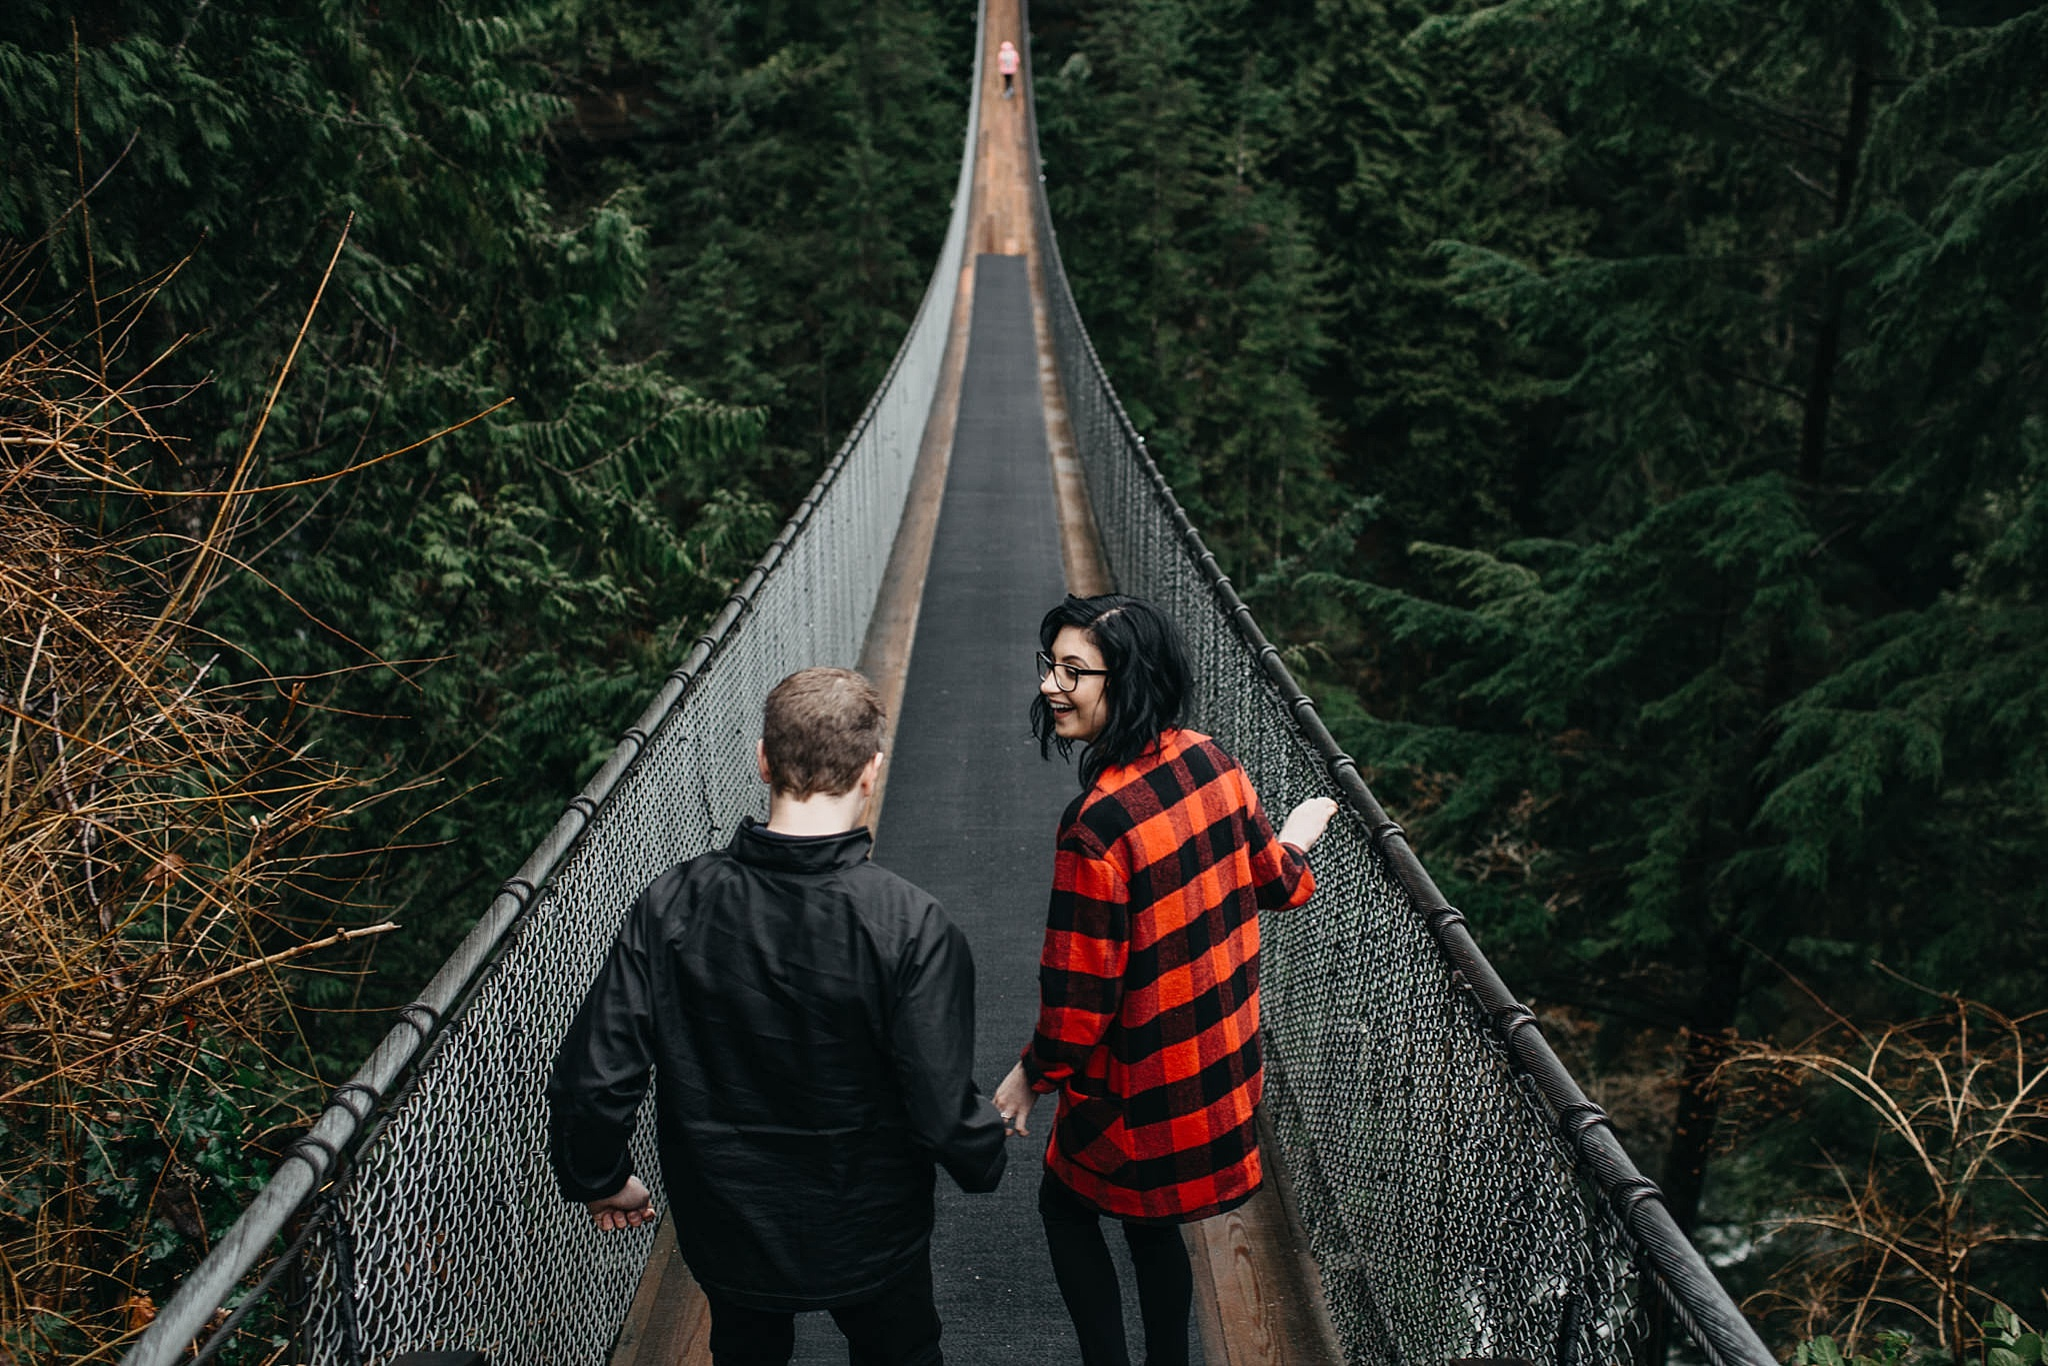 engaged couple walking on capilano suspension bridge holding hands